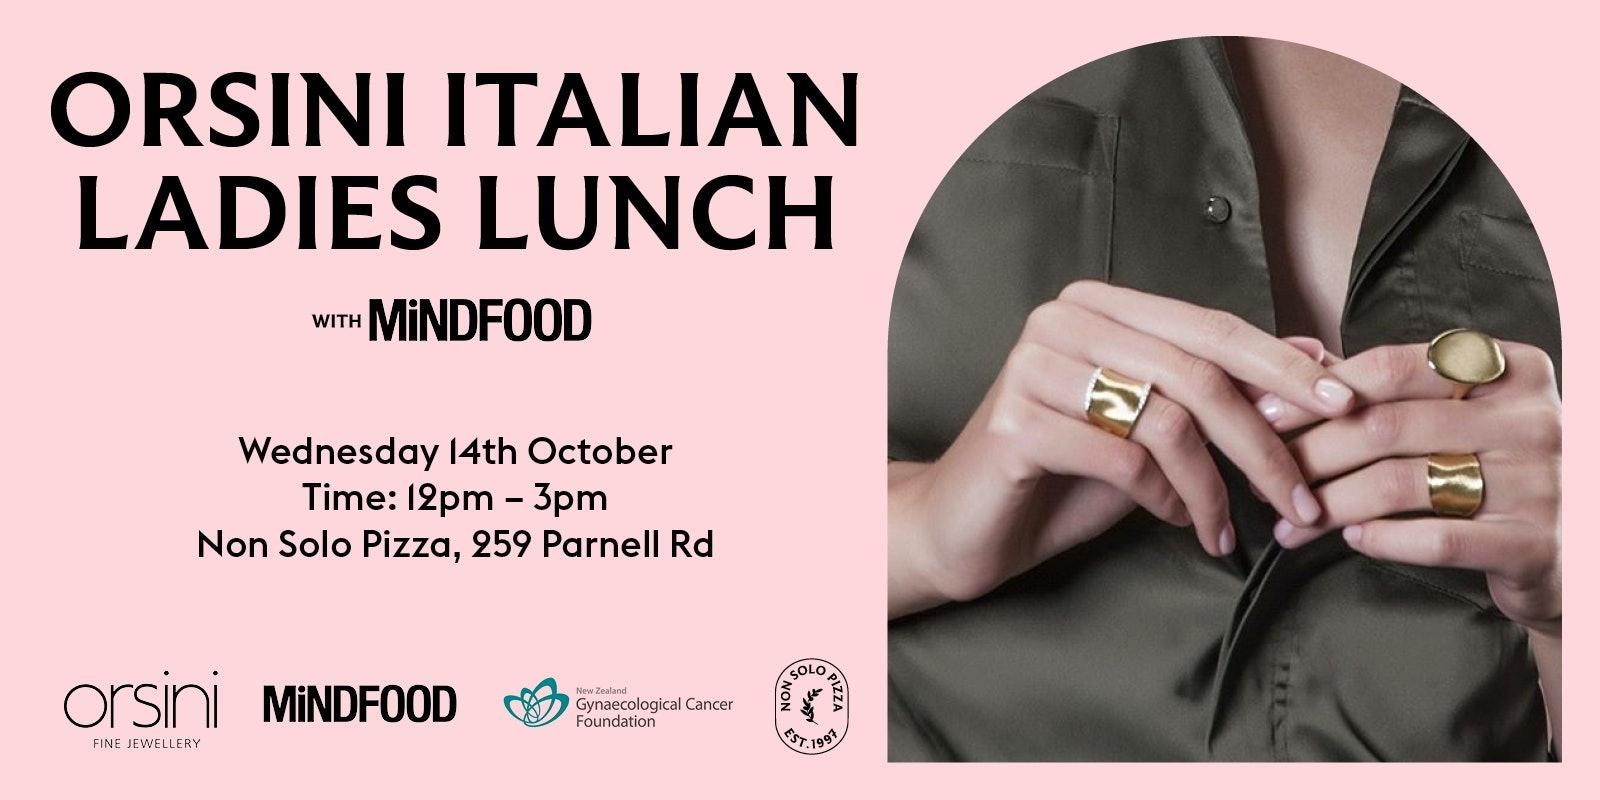 Orsini Italian Ladies Lunch